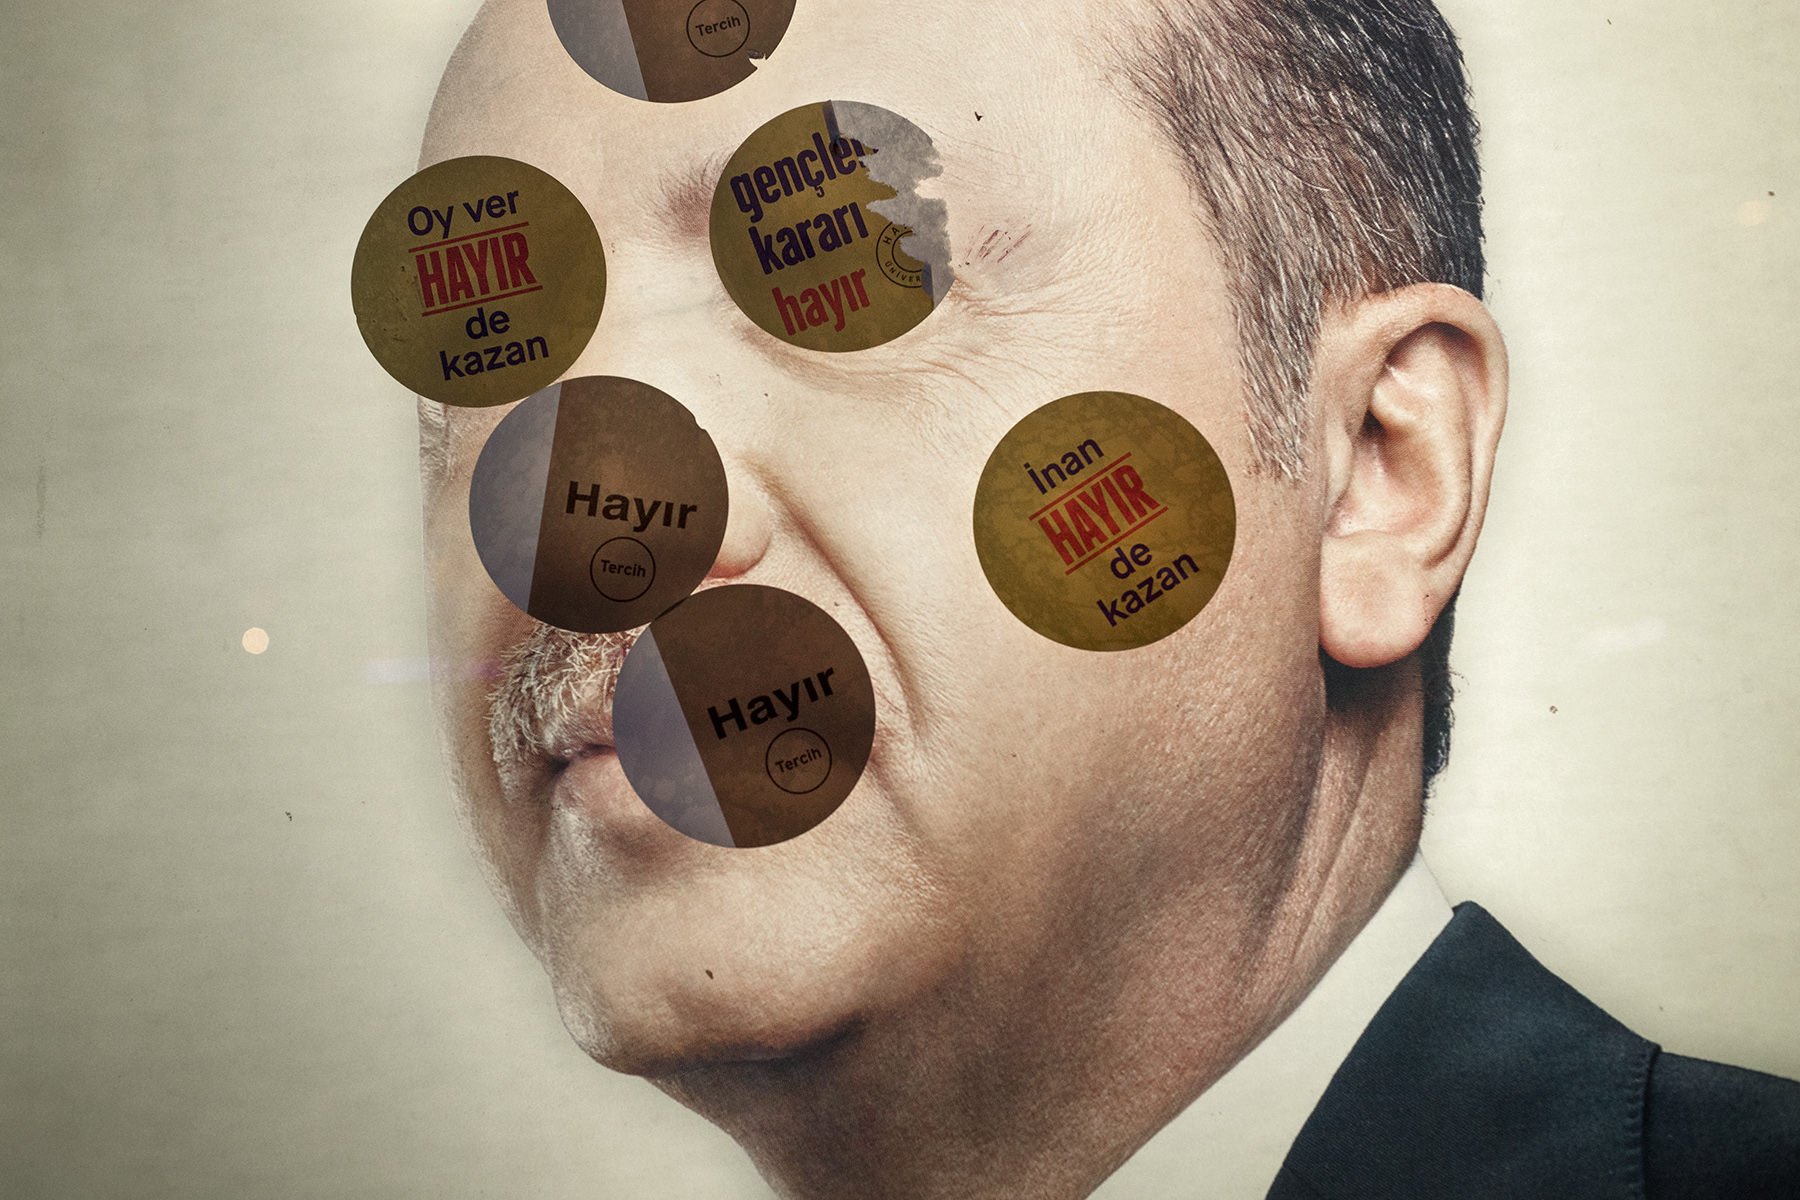 Stickers 'to believe in the victory of no' for the referendum are applied on a political poster with the effigy of President Recep Erdogan in Istanbul, Turkey on April 12, 2017.